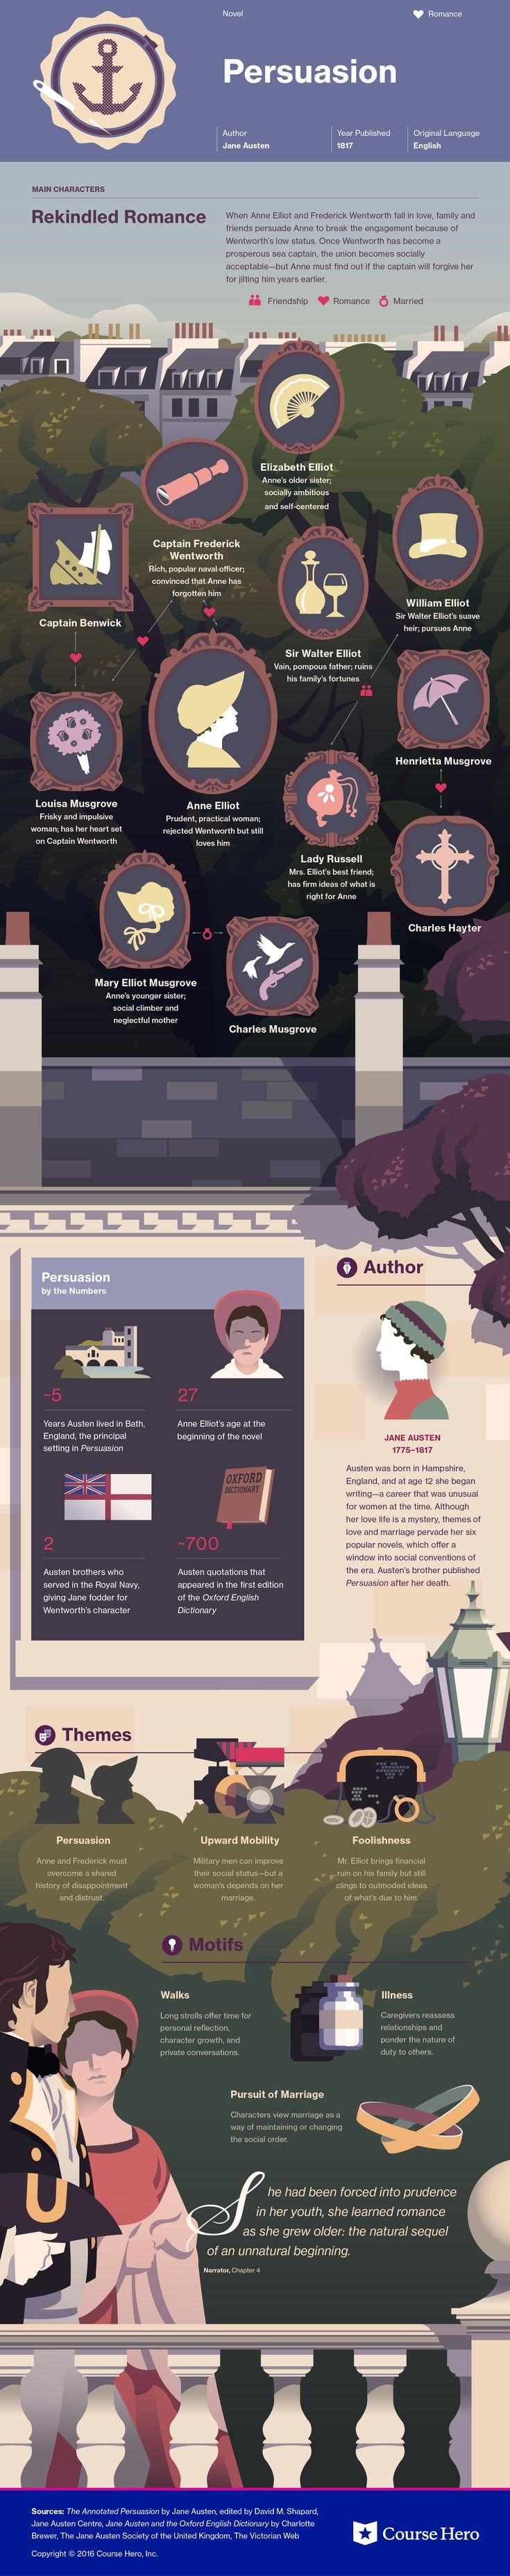 This @CourseHero infographic on Persuasion is both visually stunning and informative!